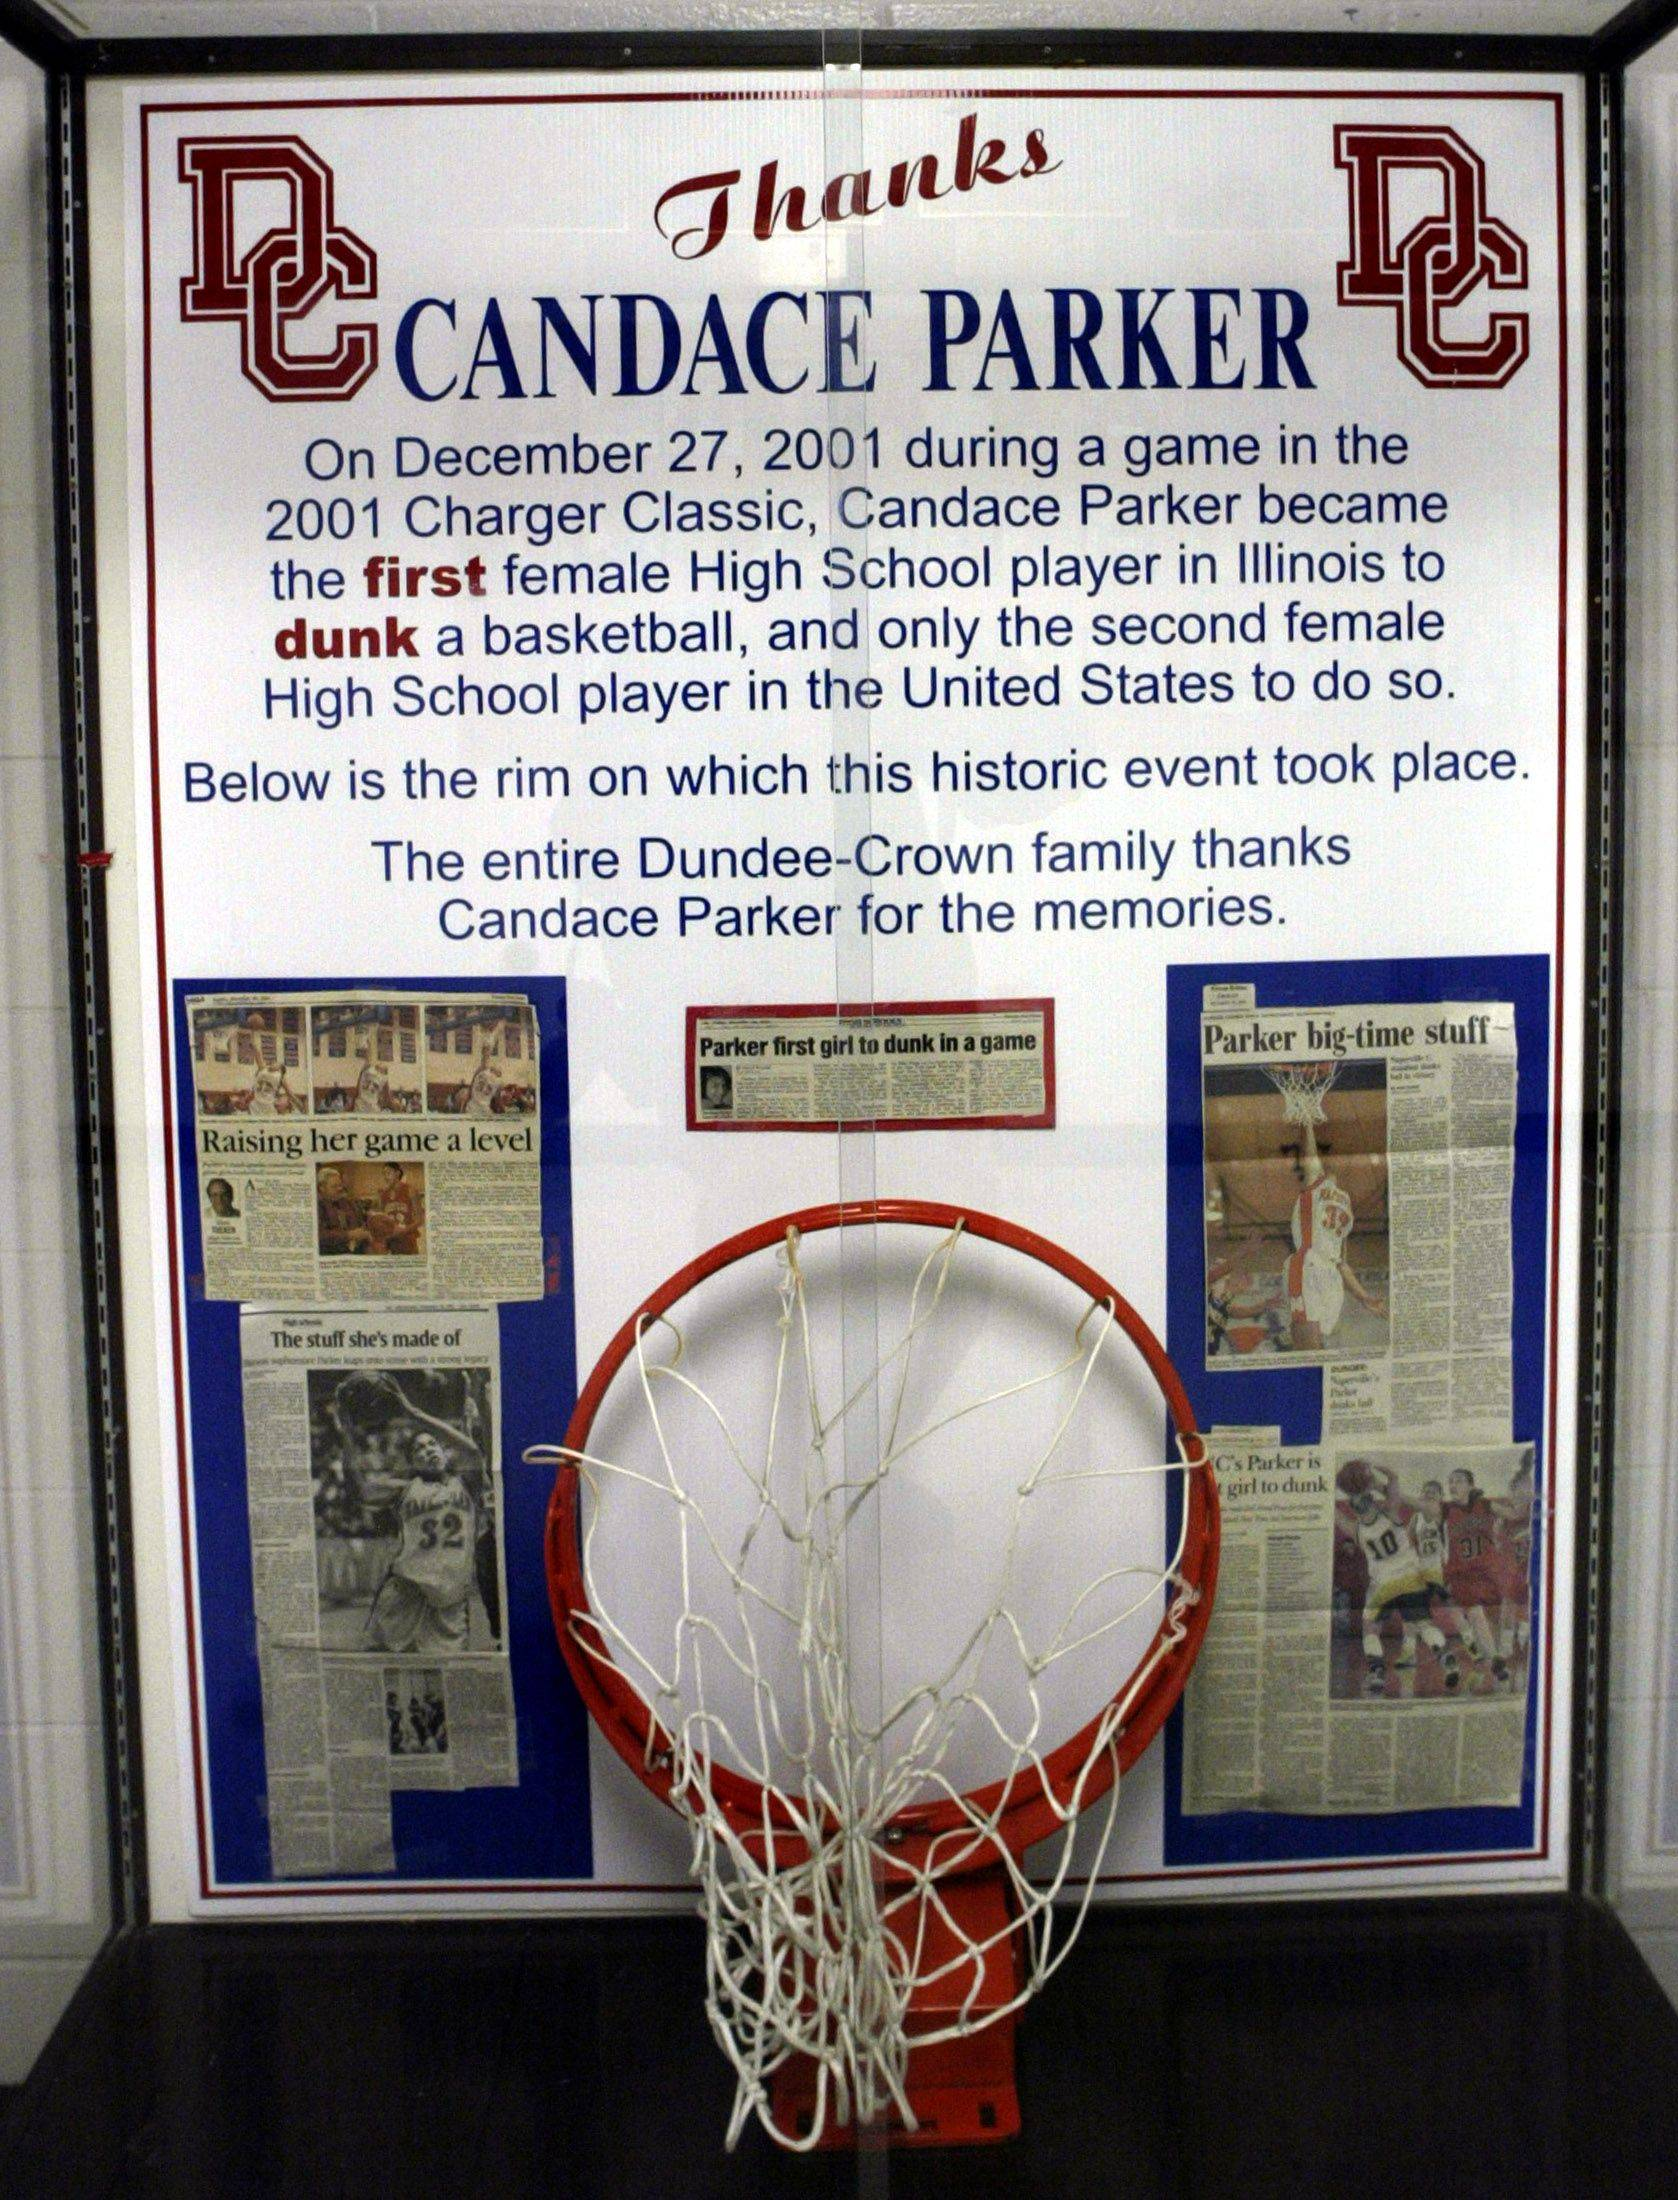 A shrine to Candace Parker of Naperville Central, set up in the hallway as part of the Charger Classic Christmas Tourney in Carpentersville, 2003.